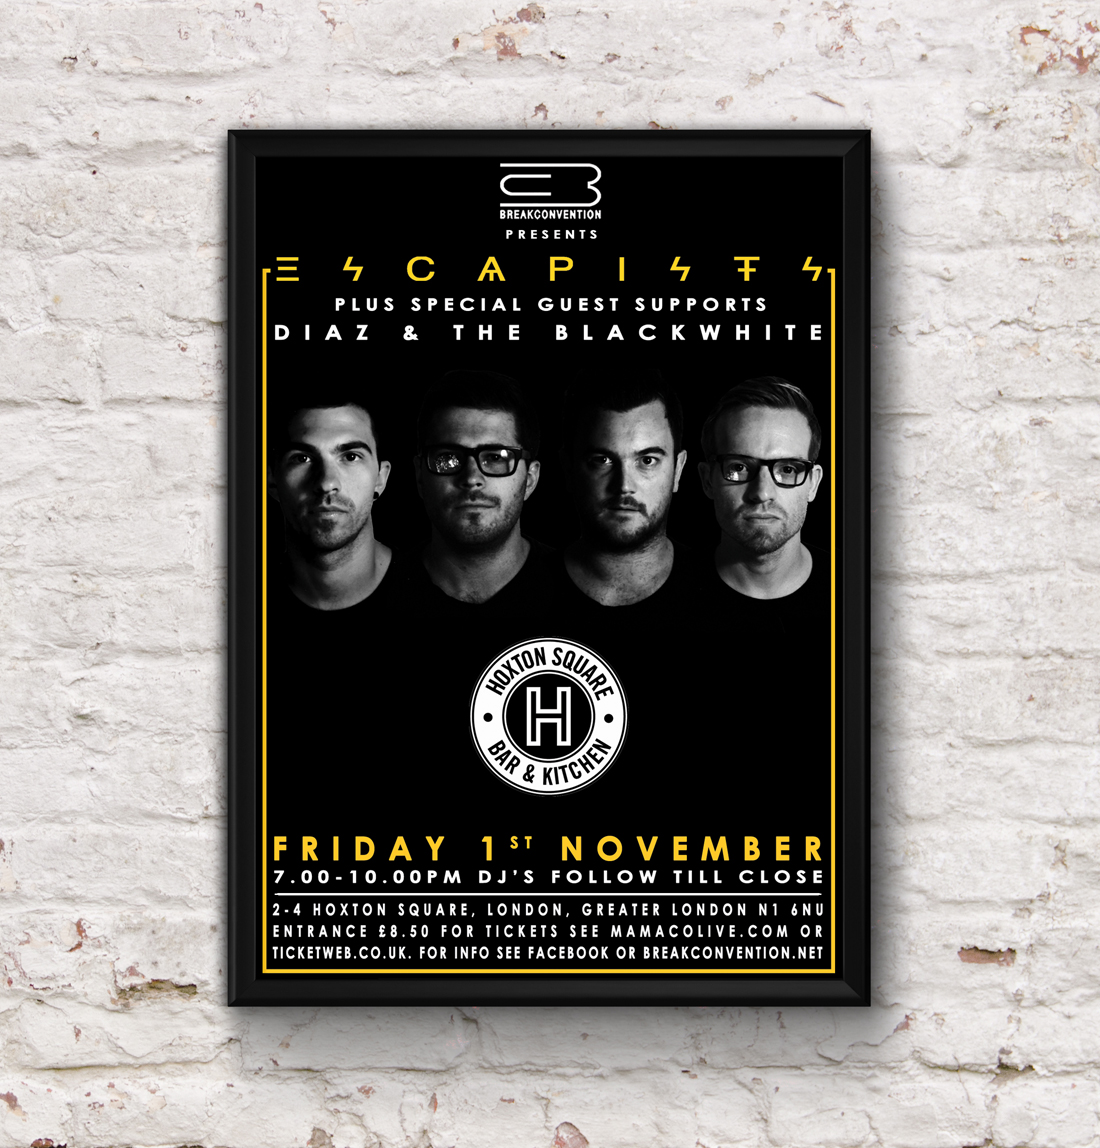 Escapists - Hoxton Square Bar & Kitchen 01.11.13